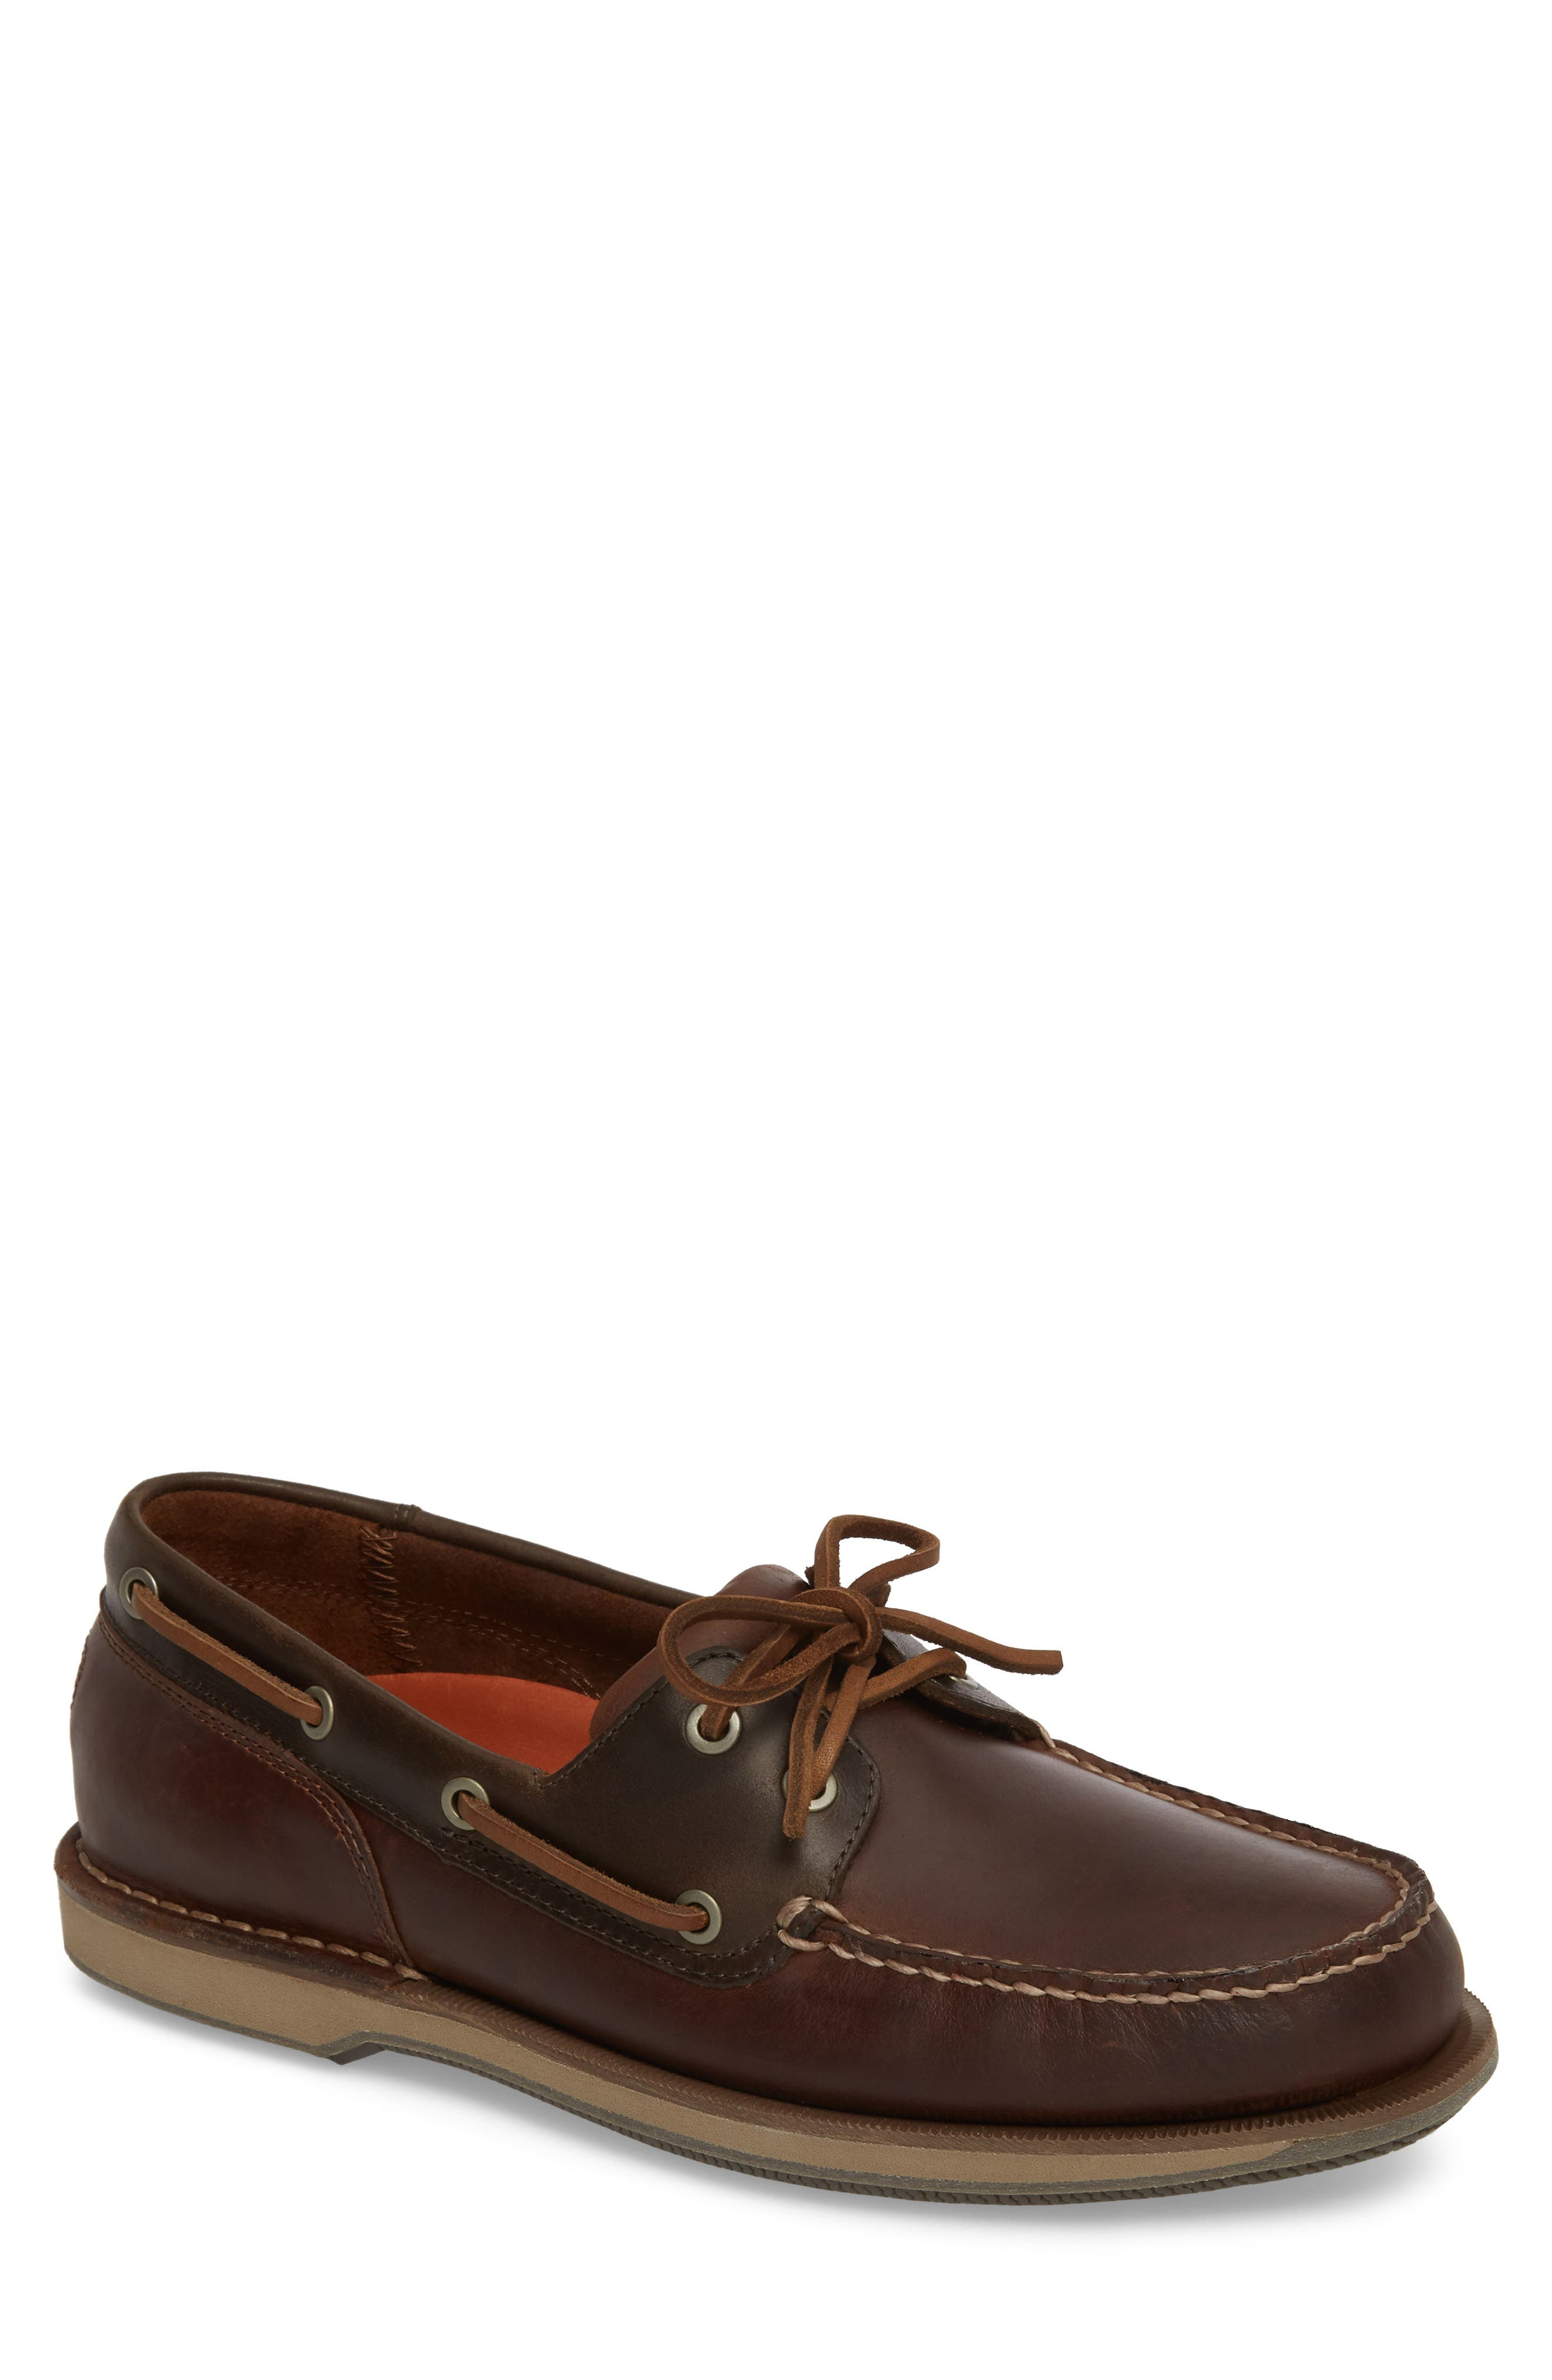 ROCKPORT, 'Perth' Boat Shoe, Main thumbnail 1, color, DARK BROWN LEATHER